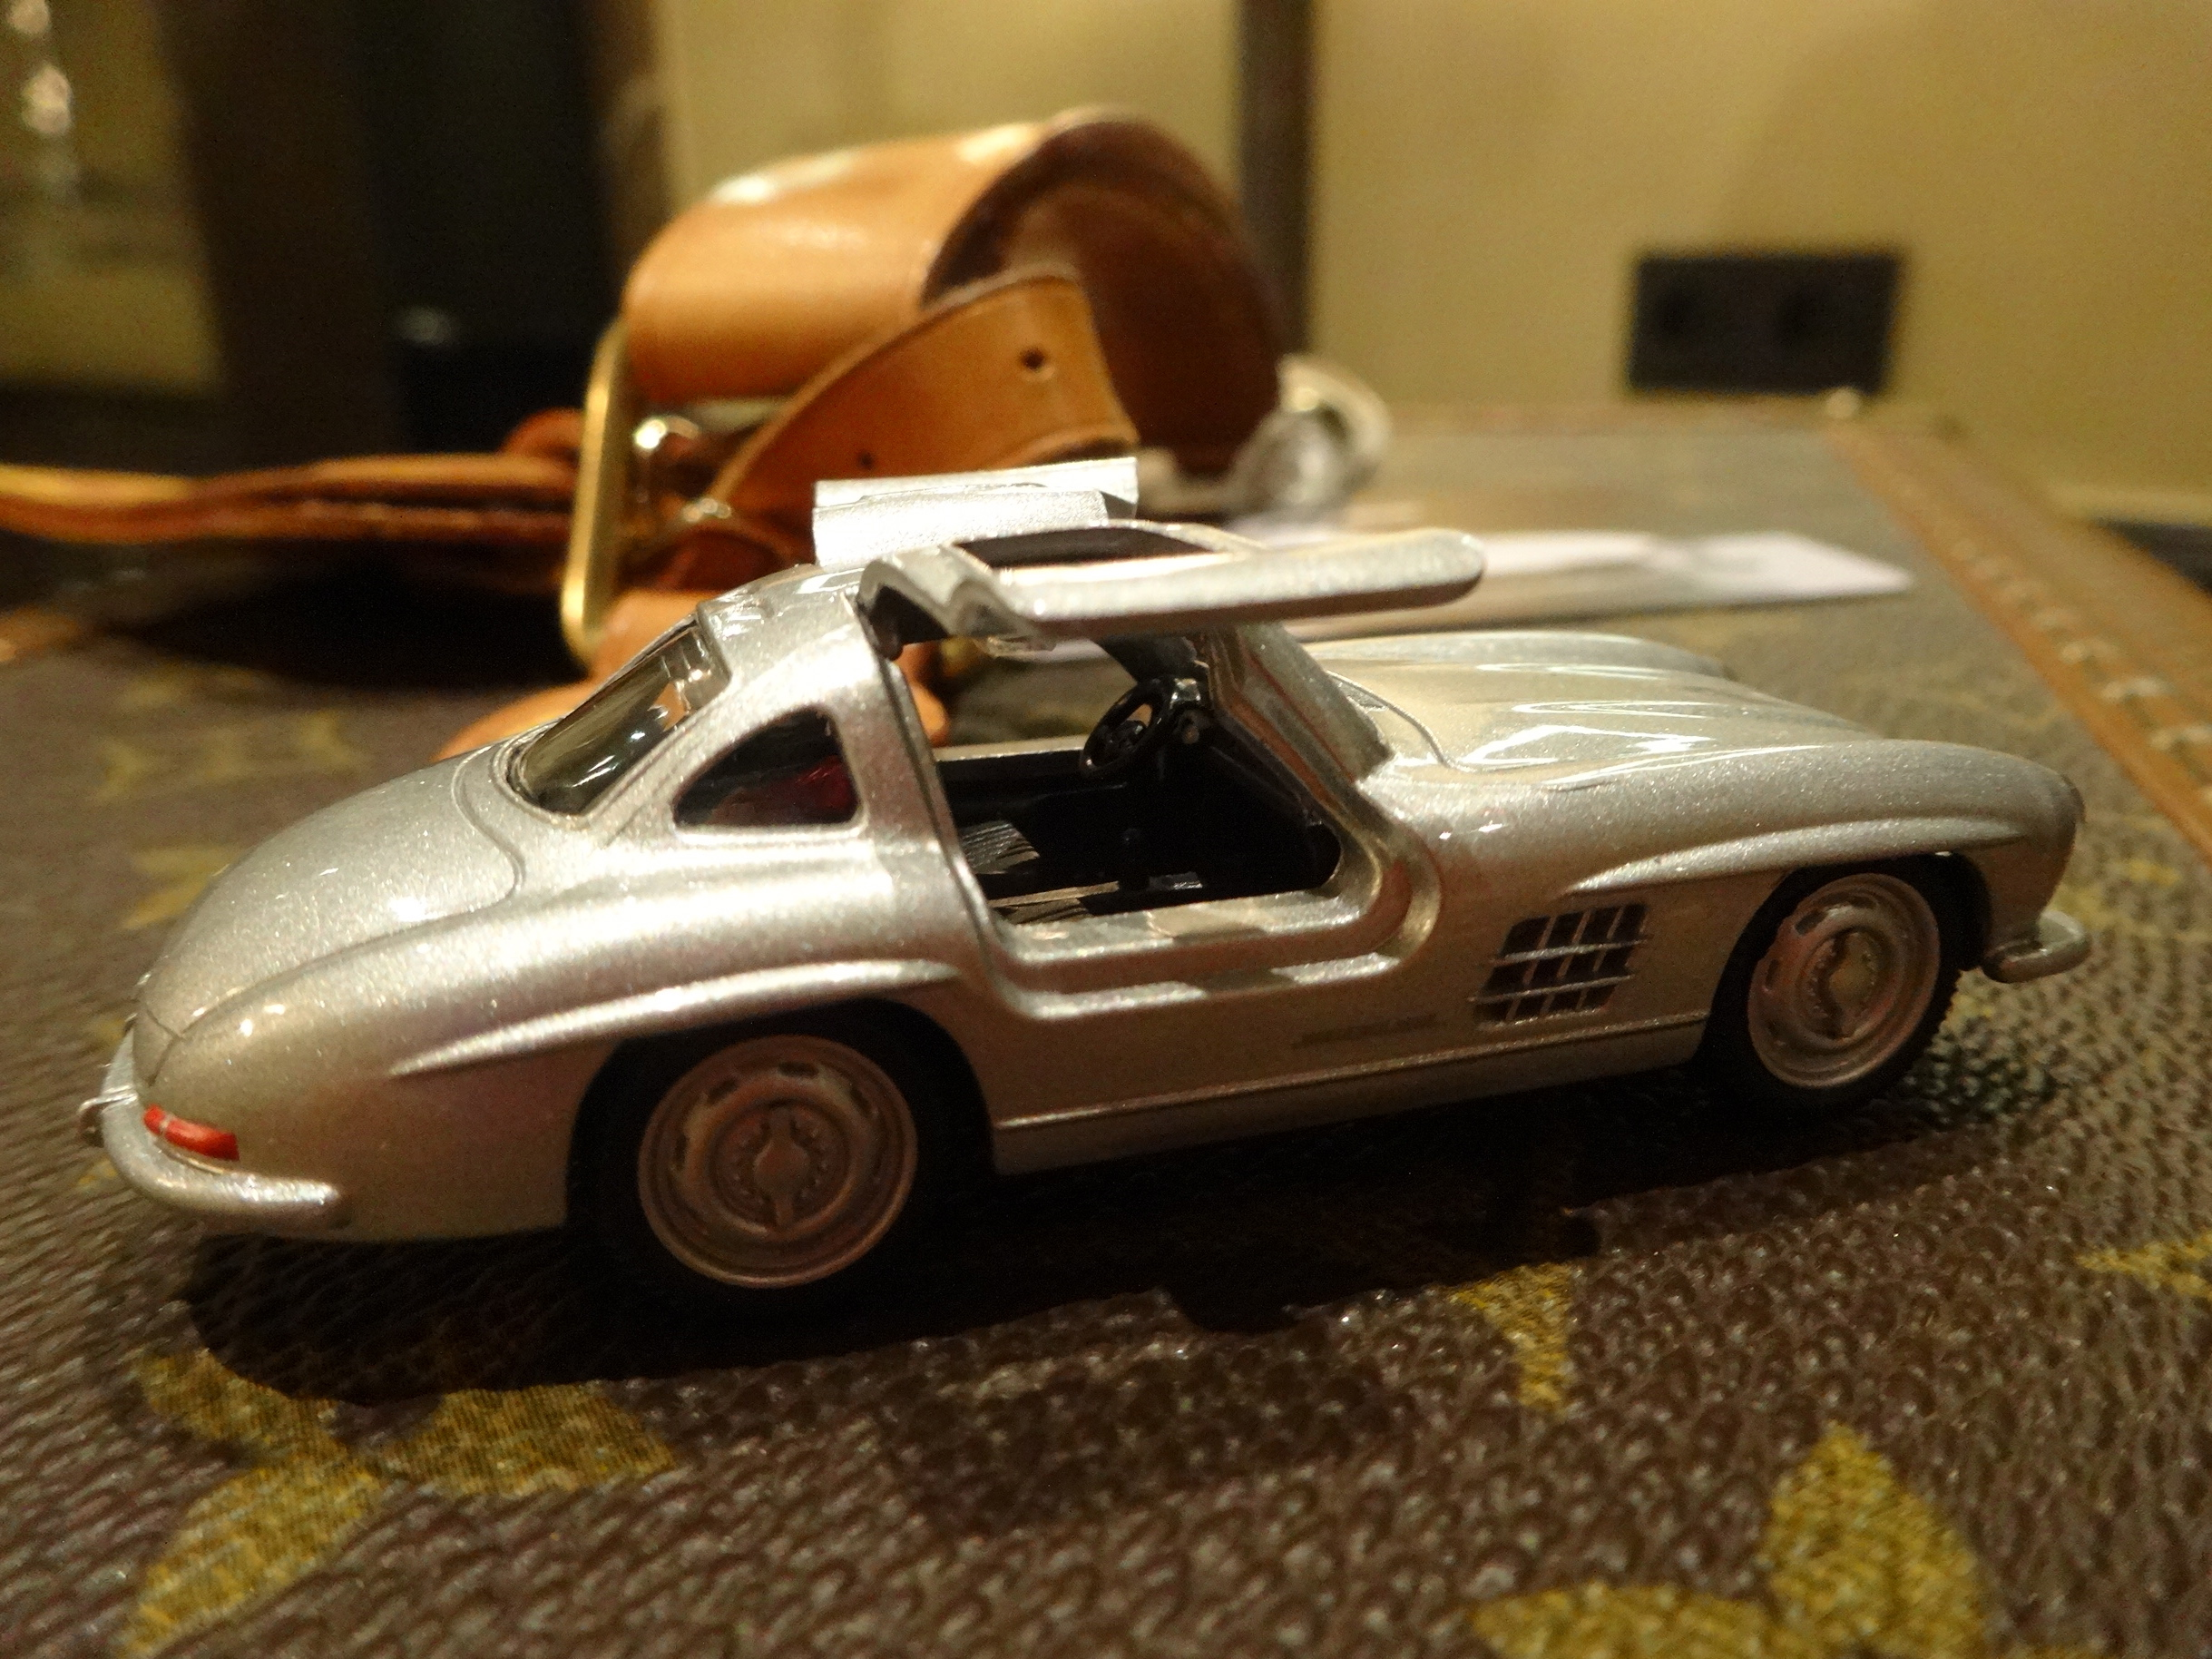 Two classics traveling - Mercedes-Benz 300 SL and LV Boite Pharmacie